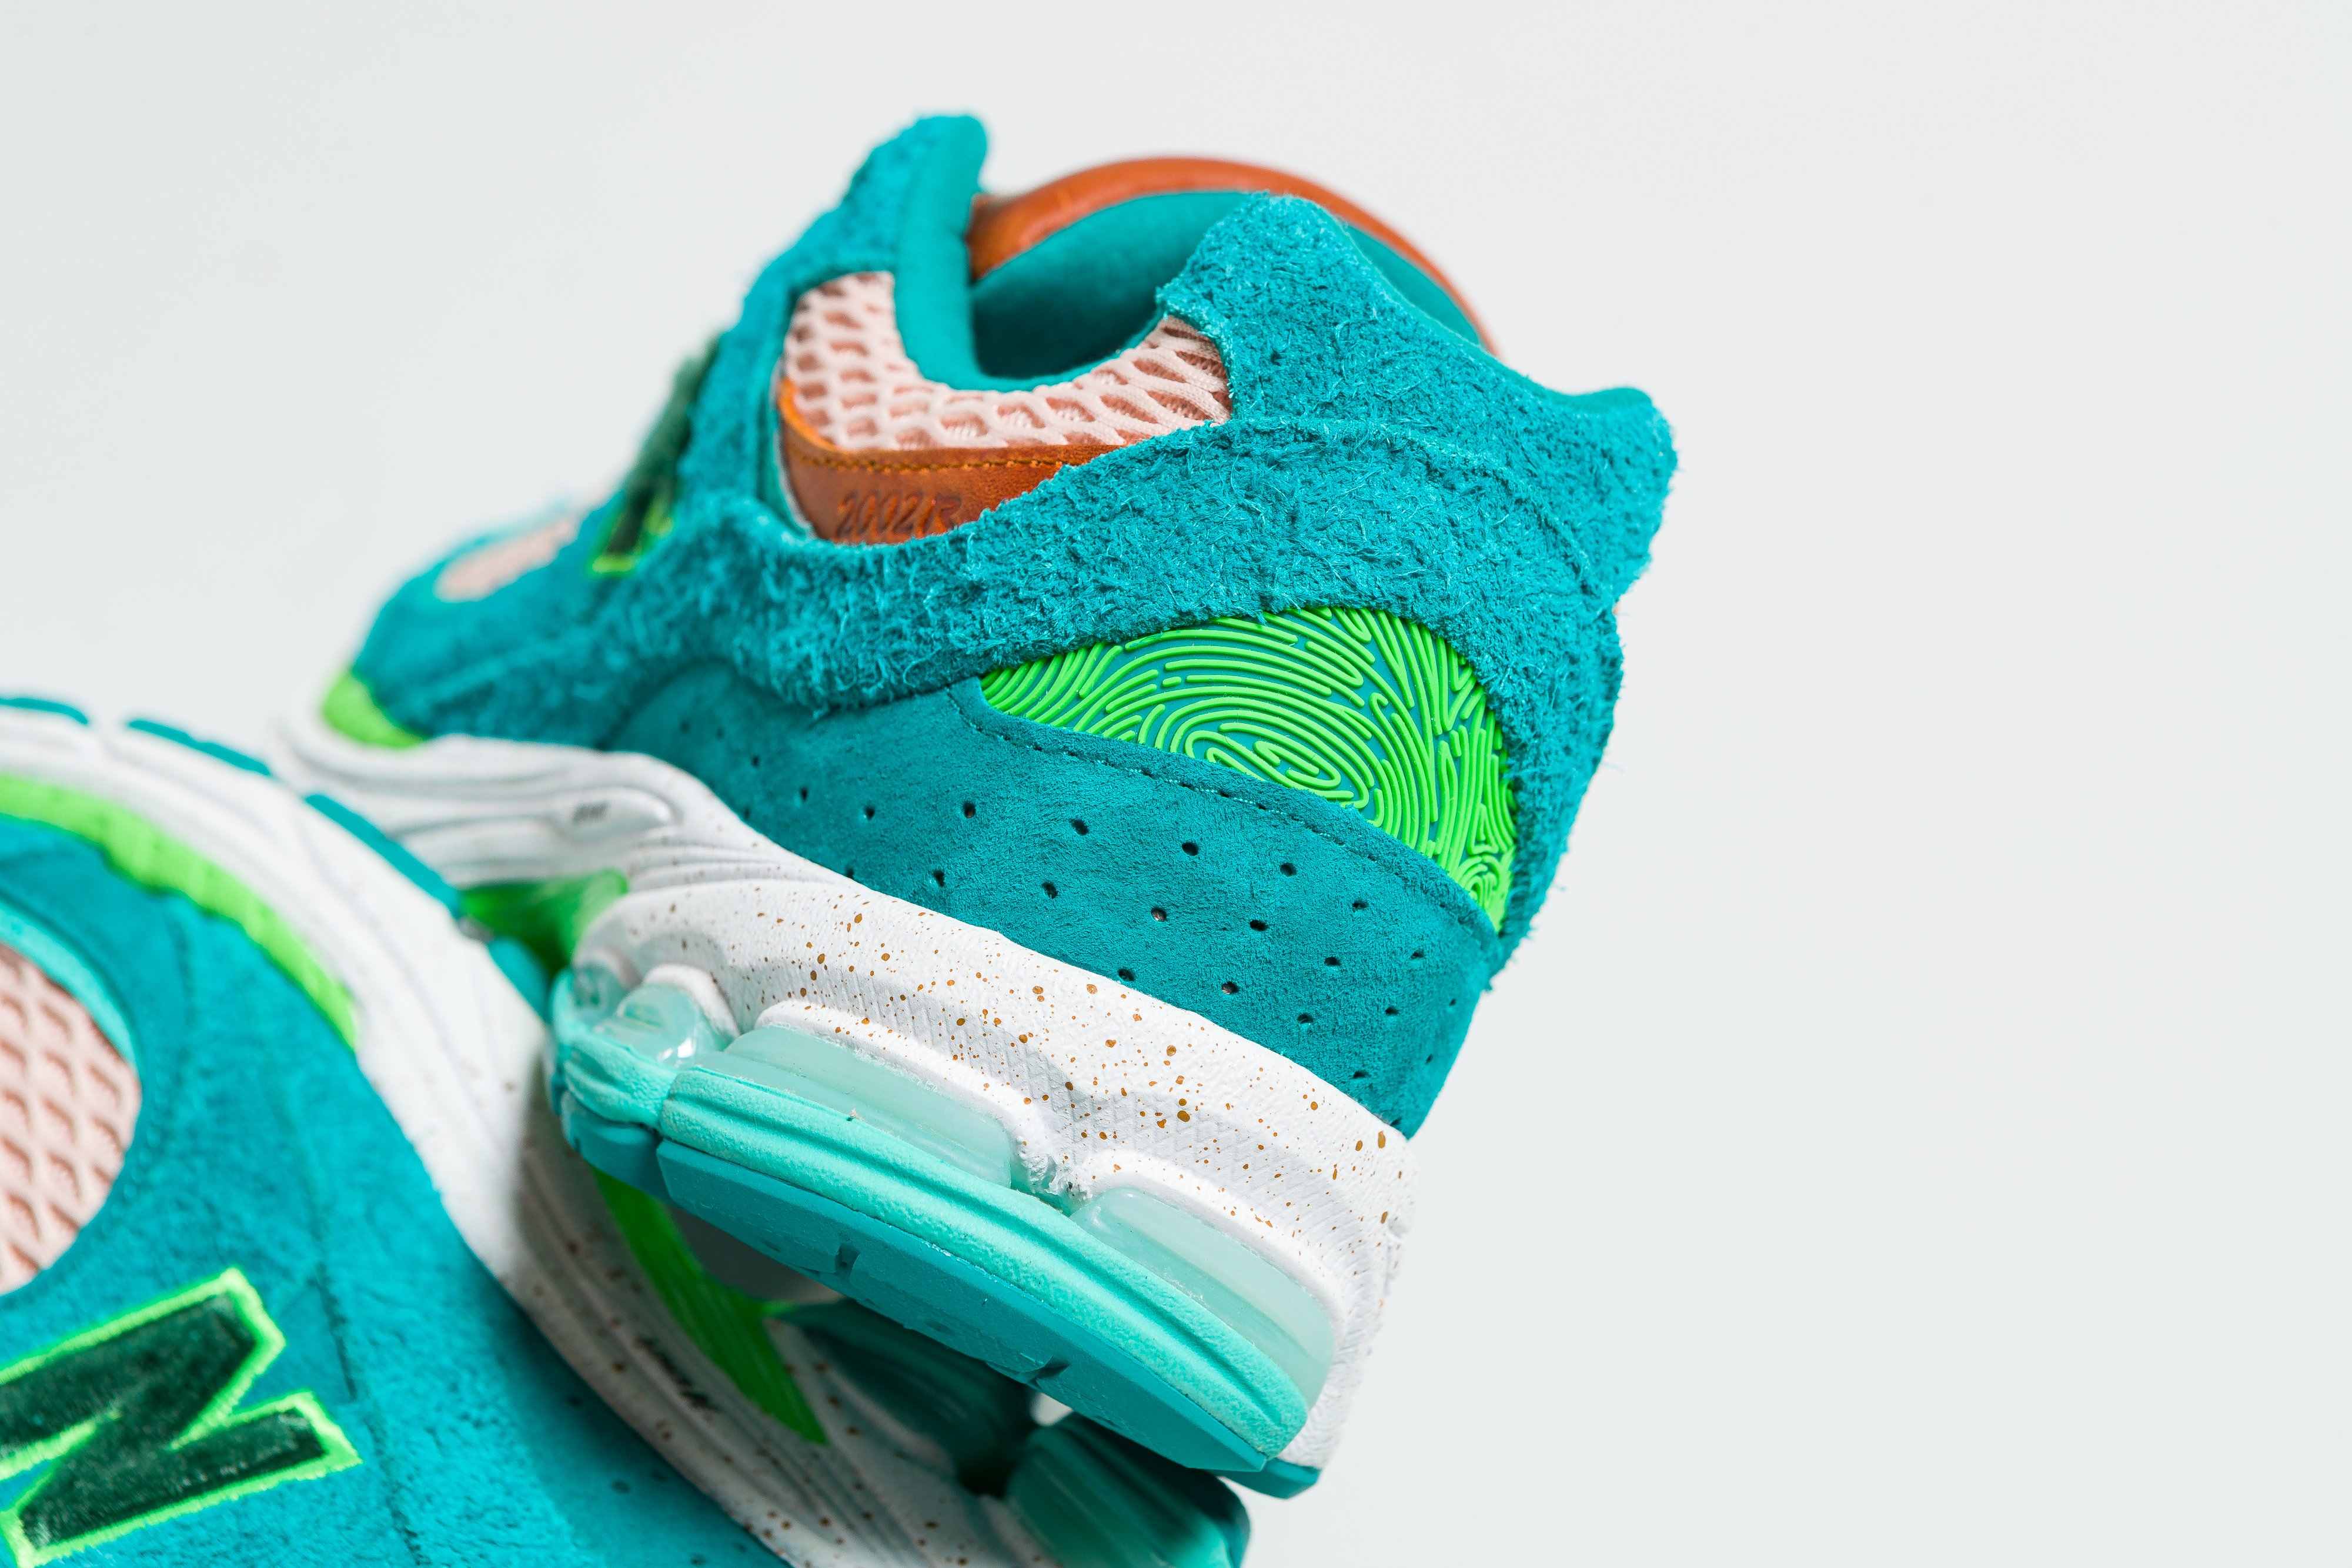 Up There Launches - New Balance X Salehe Bembury ML2002RJ 'Water Be The Guide'